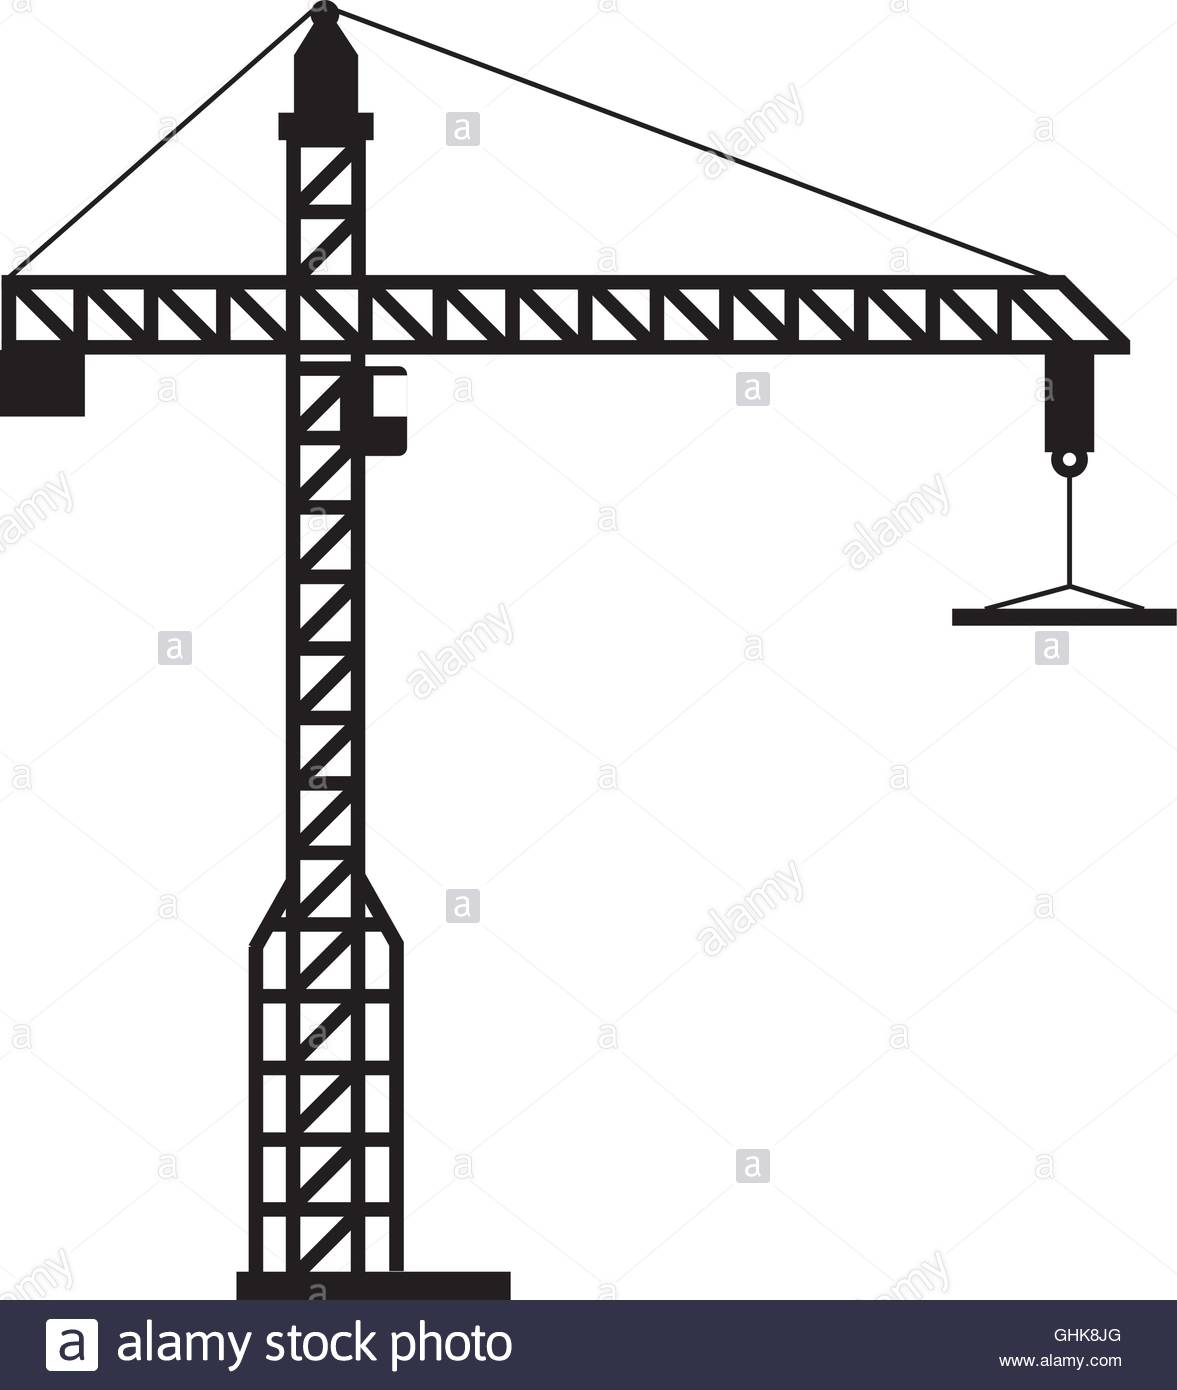 1177x1390 Hoist Stock Vector Images